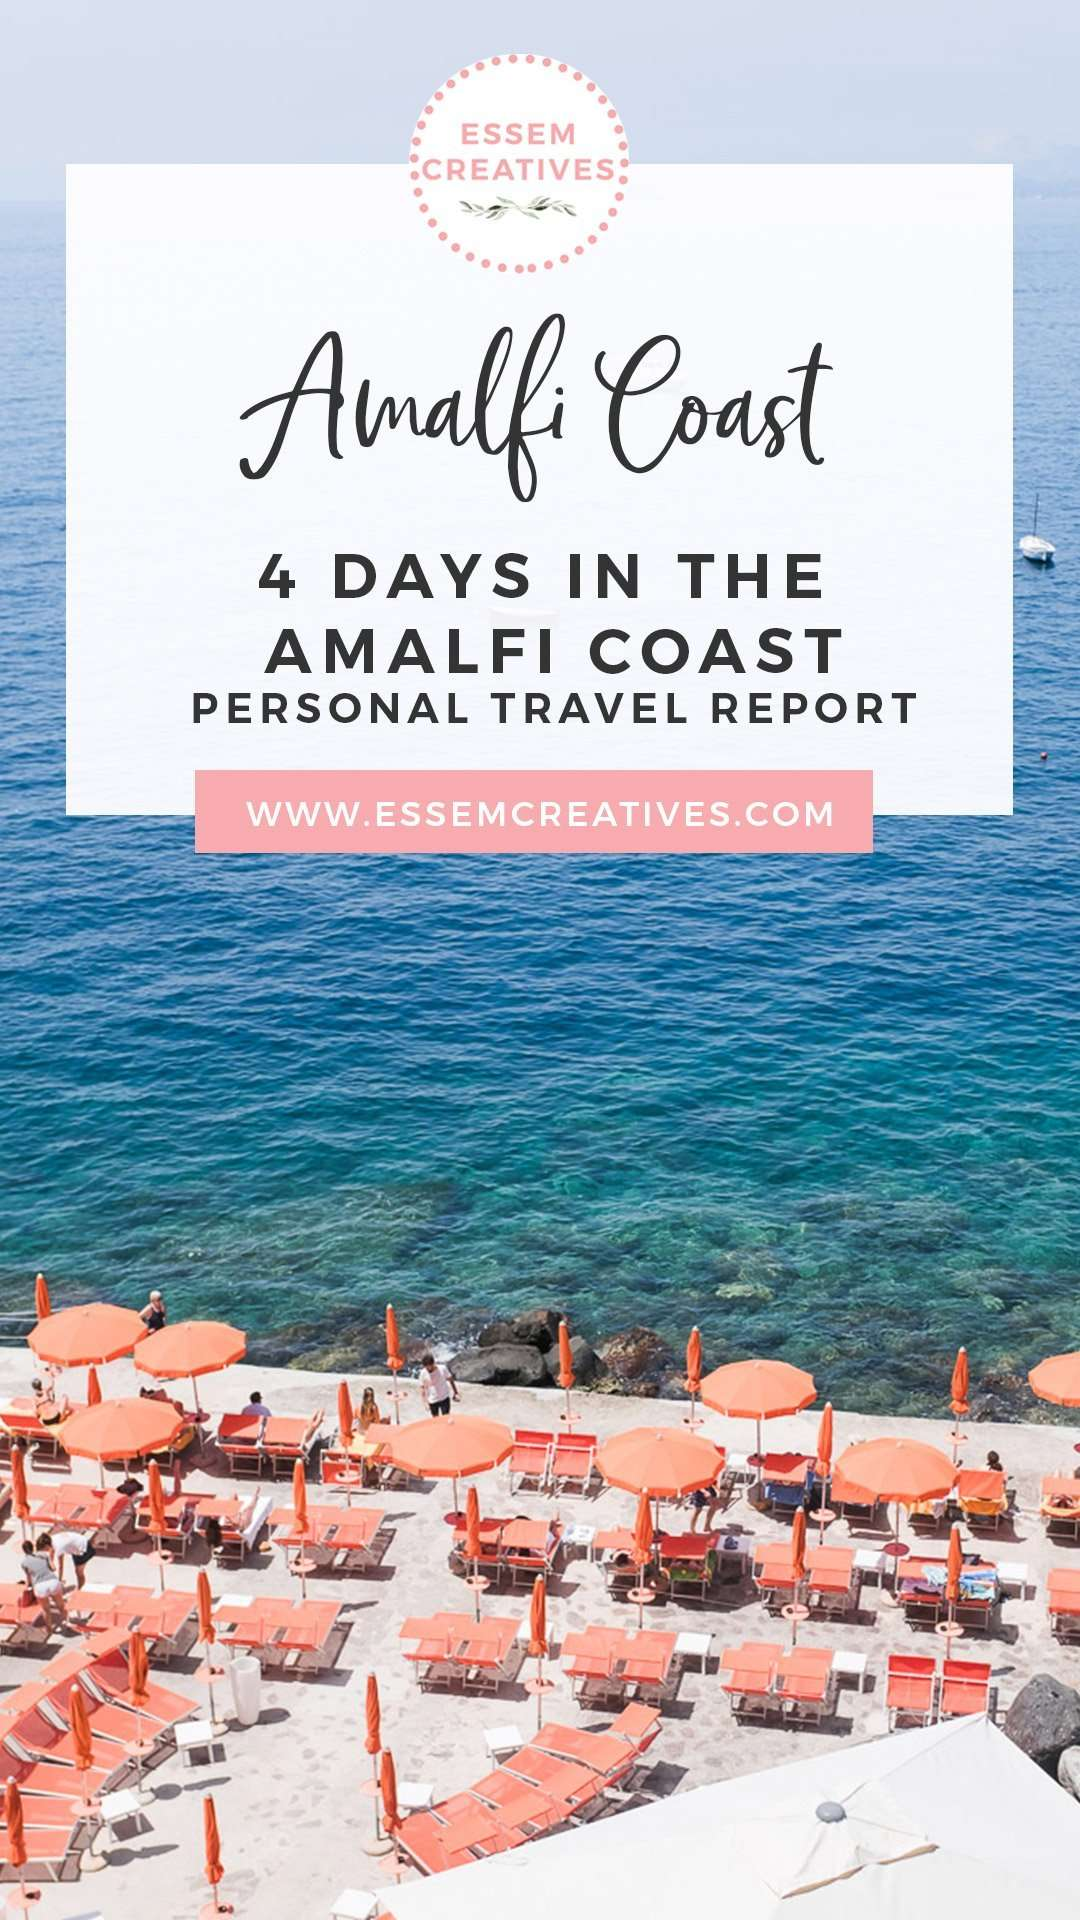 4 Days Amalfi Coast Positano Praiano Italy Itinerary - How artists and creative people travel | Amalfi Coast Travel Blog | Things to Do in Positano | Prettiest parts of Amalfi Coast Positano Praiano